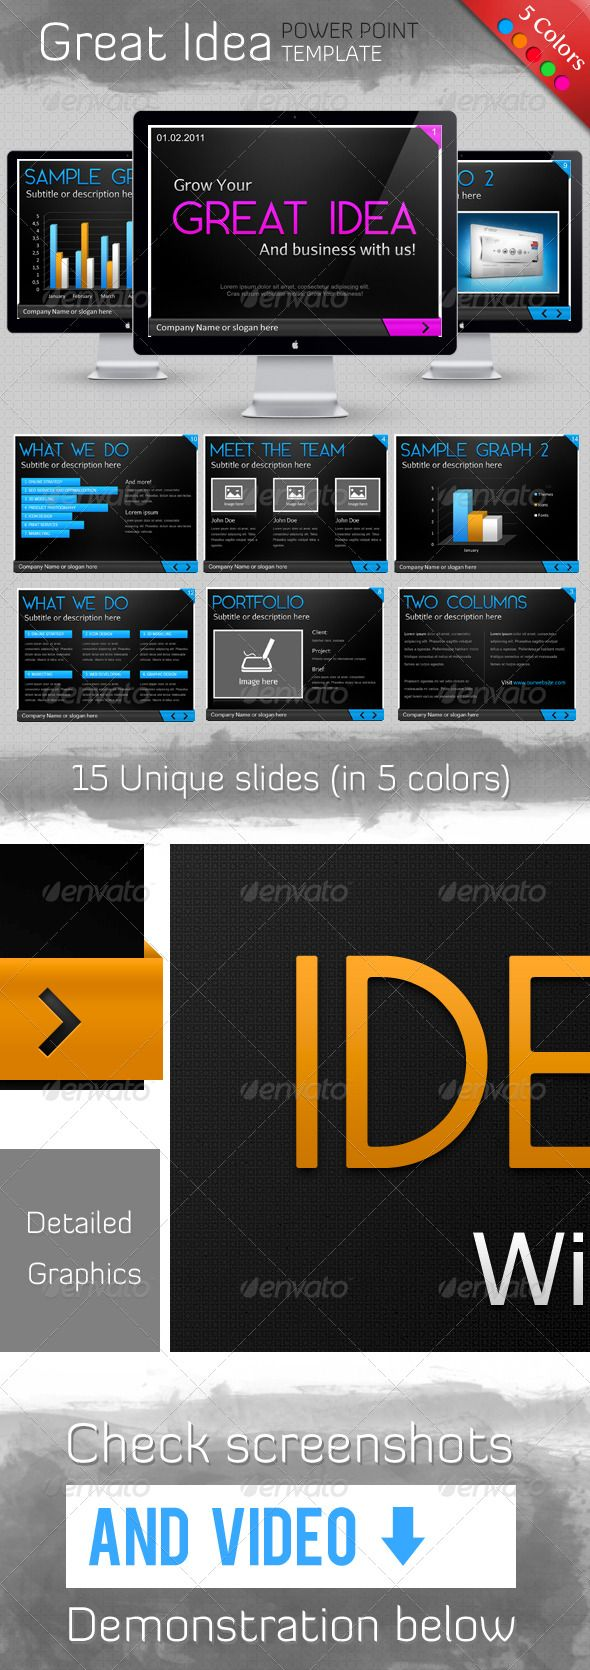 Great Idea Template - Powerpoint Templates Presentation Templates ...